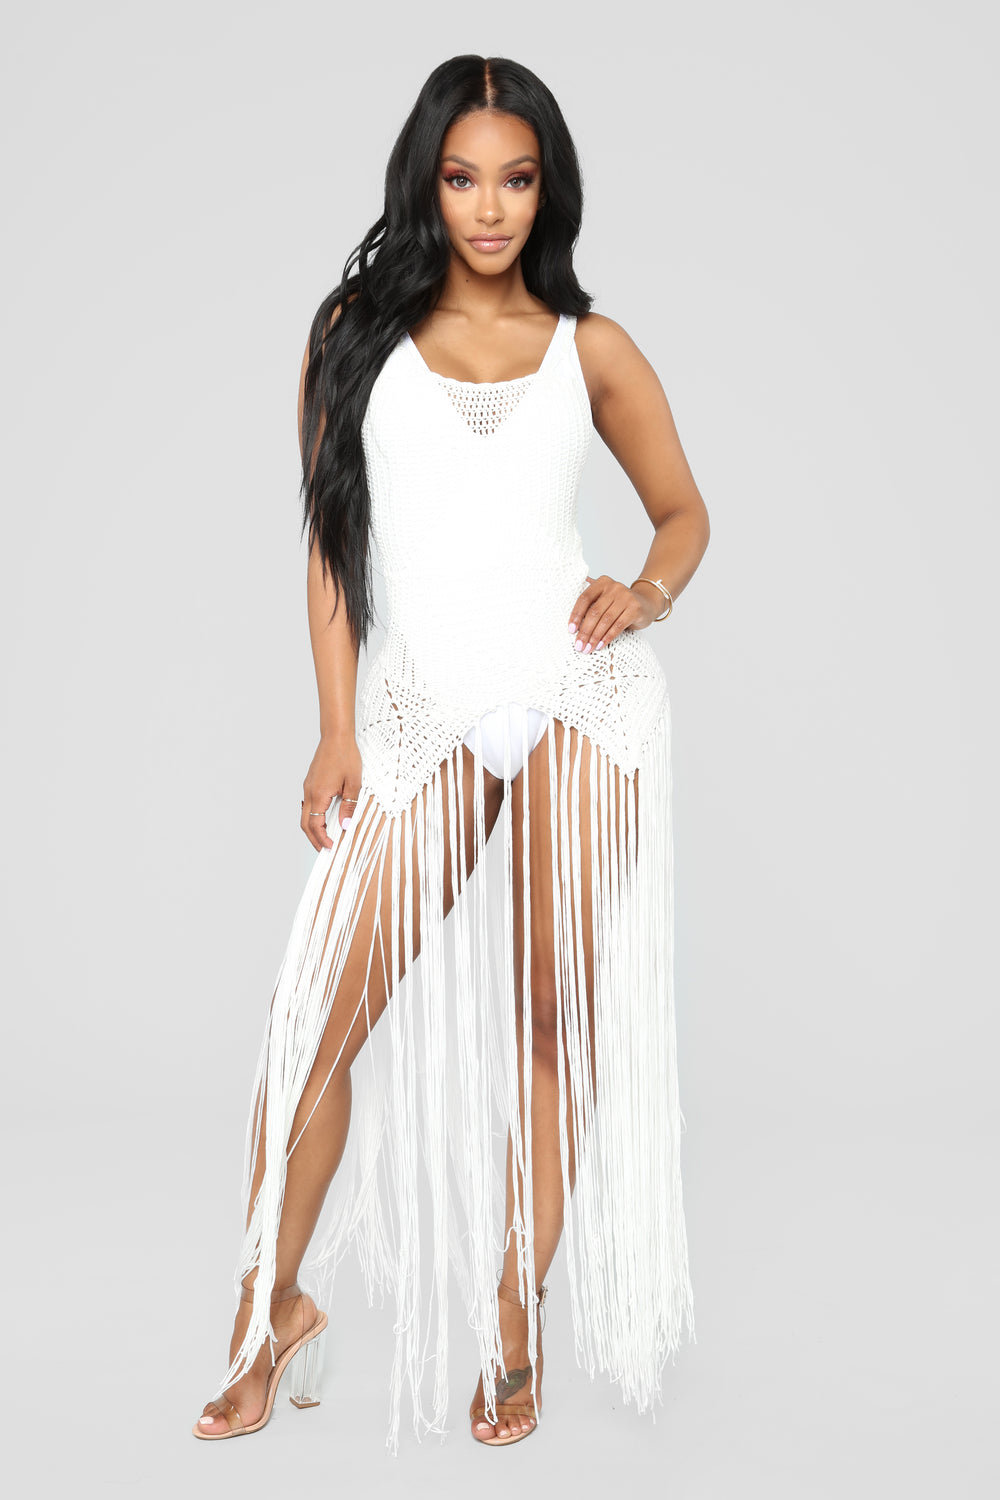 Can't Stop Desire Cover-Up Dress - Ivory